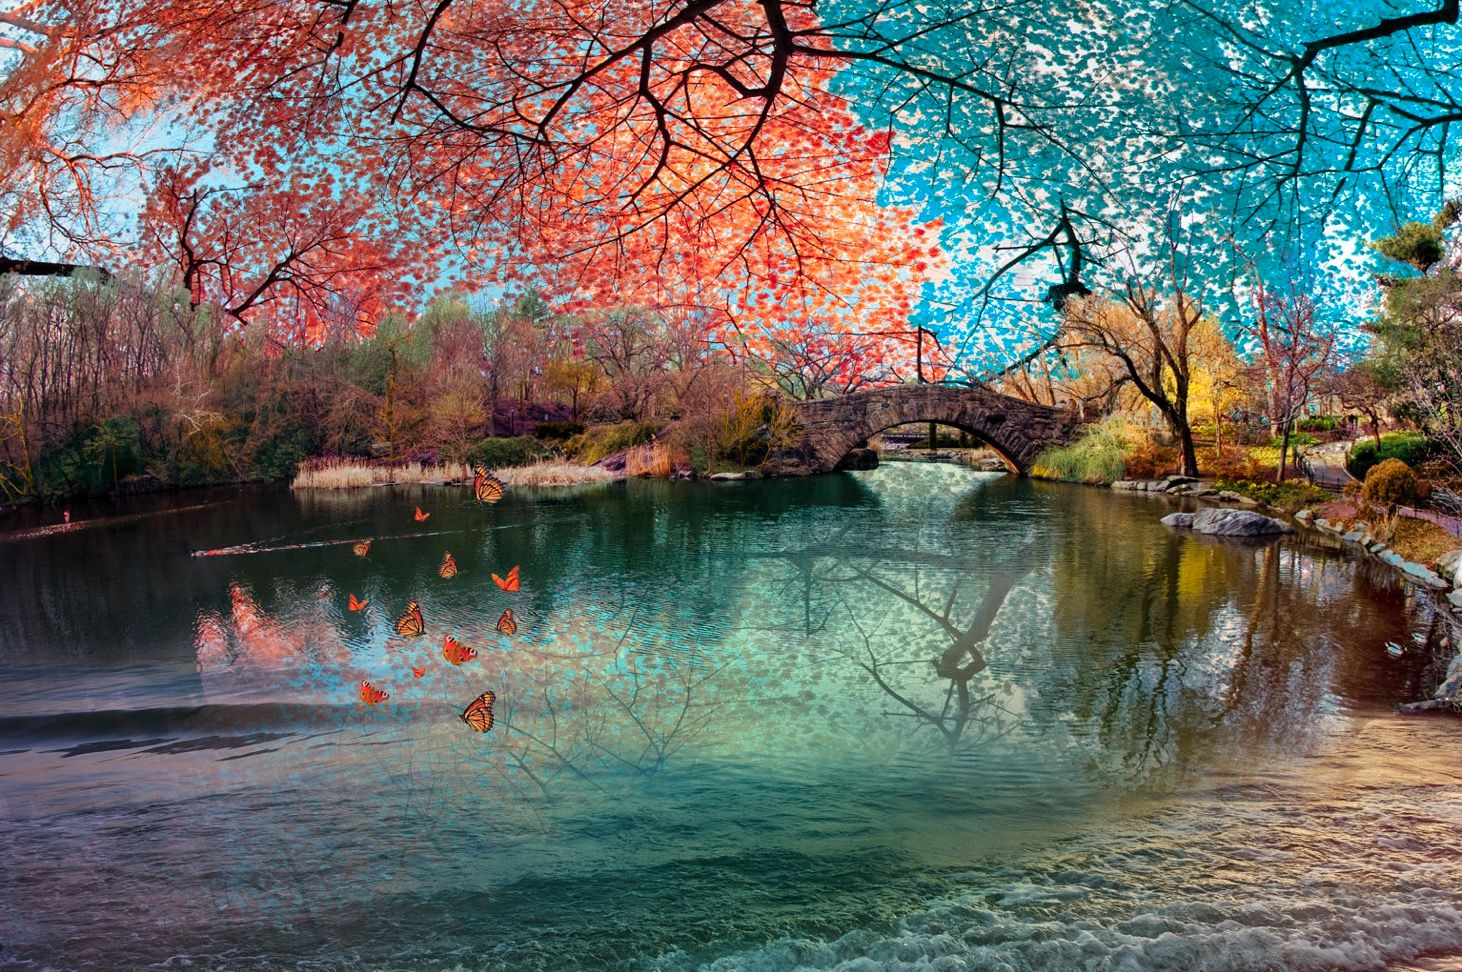 Central Park Rainbow Bridge with Butterflies